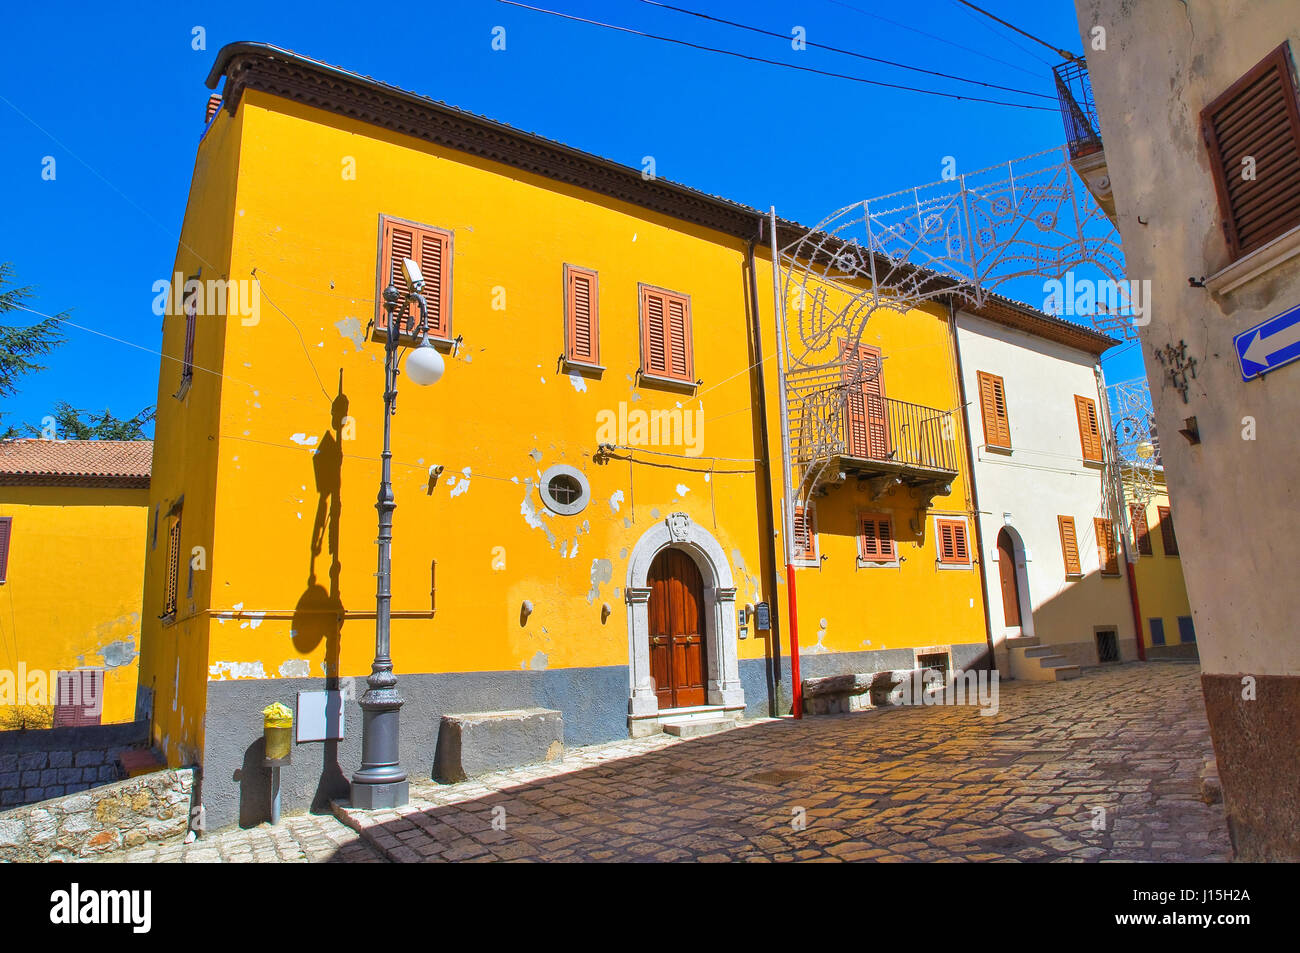 Alleyway. Pietragalla. Basilicata. Italy. Stock Photo